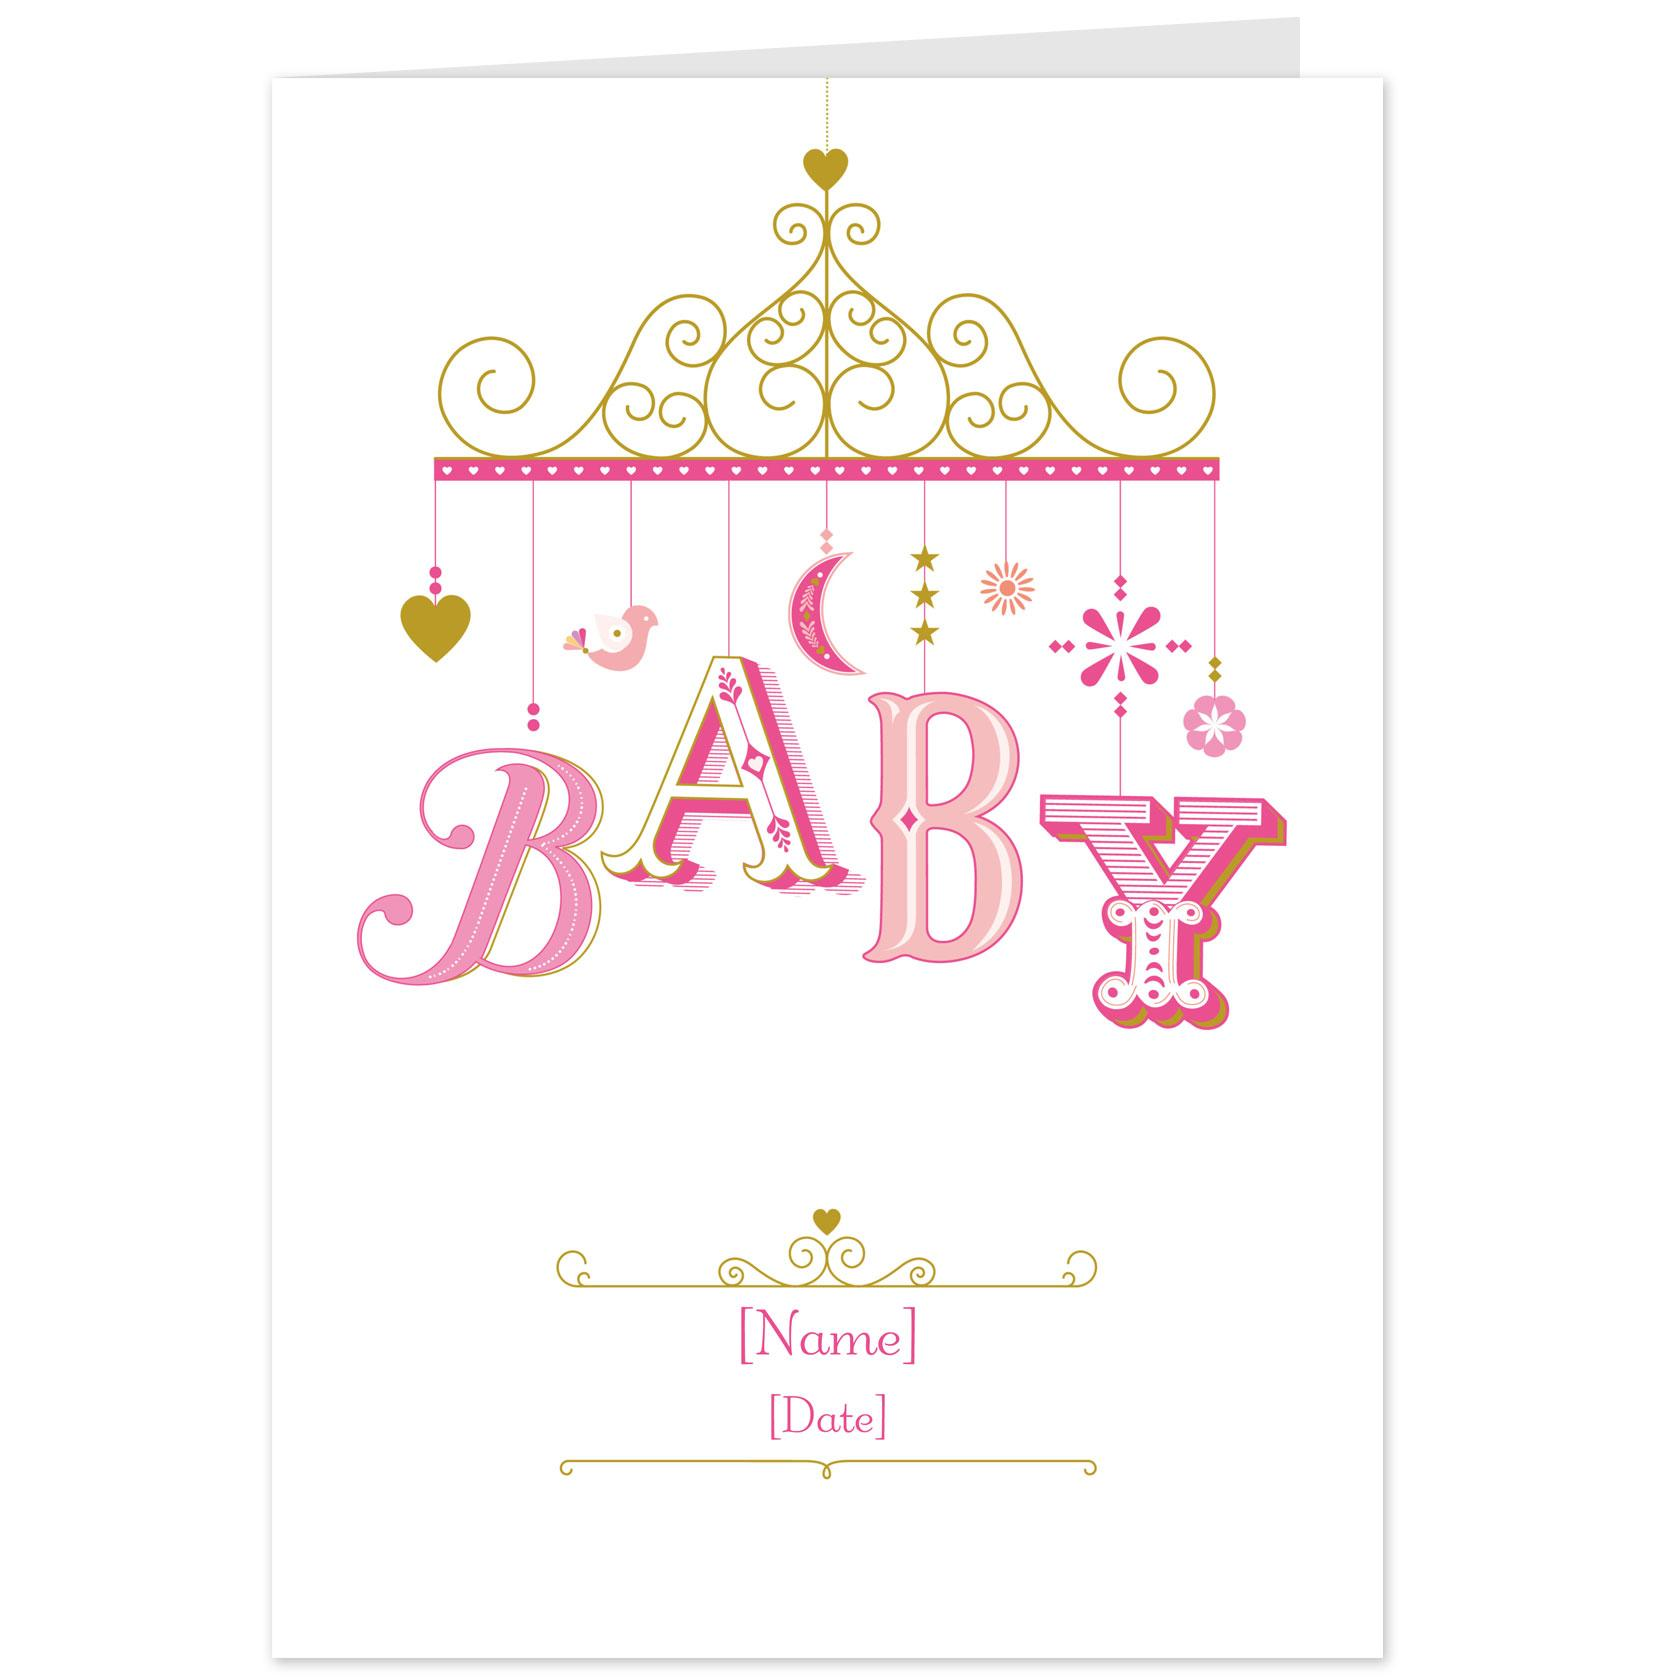 Congratulations On New Baby Girl Quotes: Baby Girl Congrats Quotes. QuotesGram